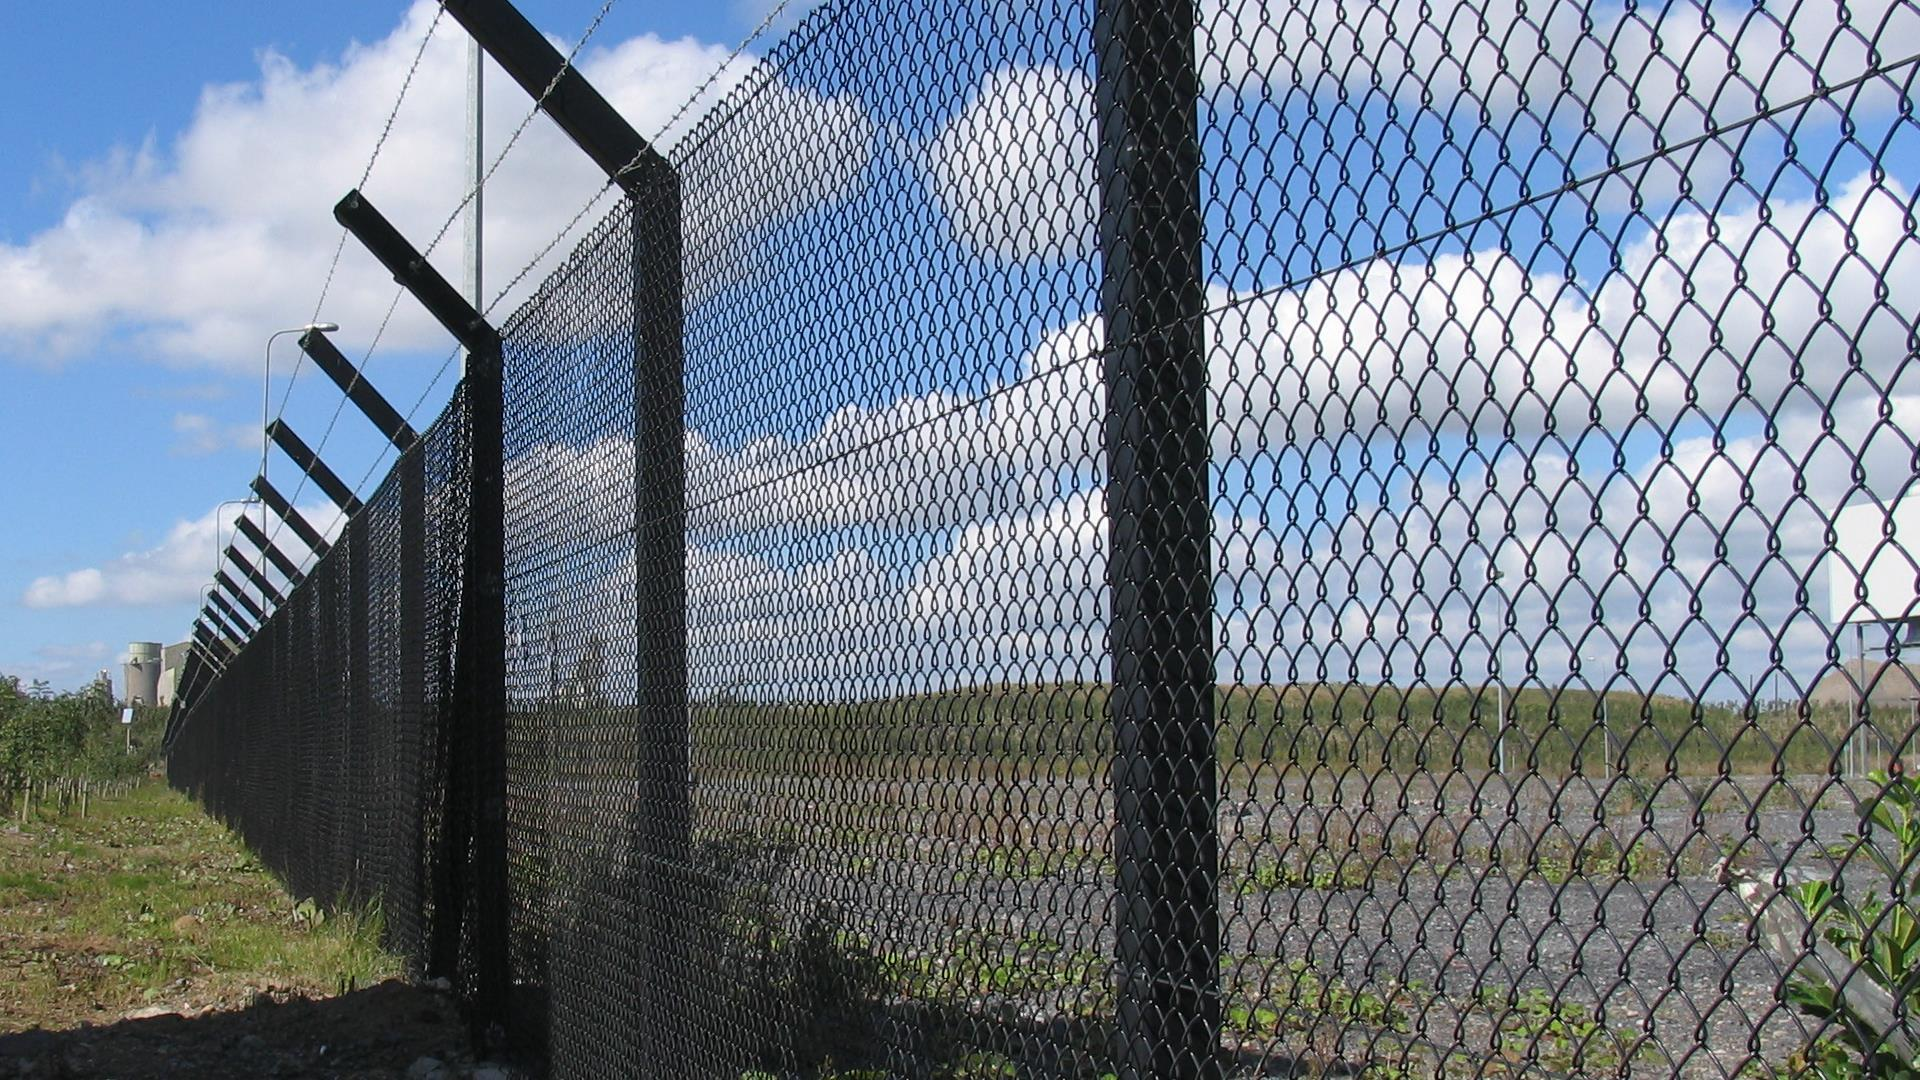 Chainlink - Fencing product by Mulligan Fencing